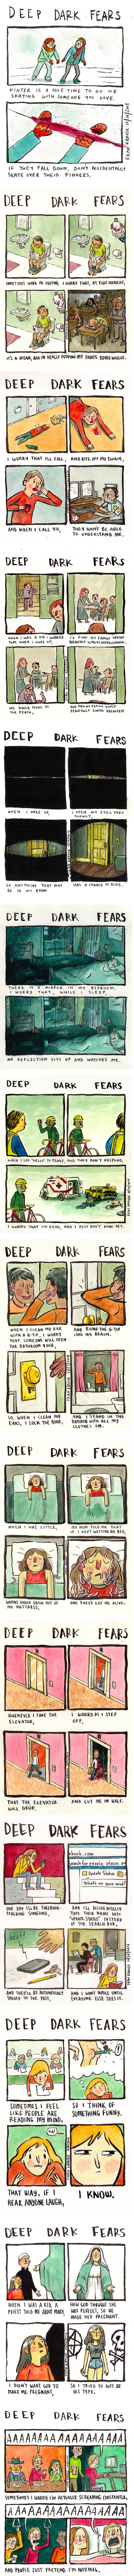 Artist Illustrates All Of Our Darkest And Most Embarrassing Fears Into Funny Comic Strips.